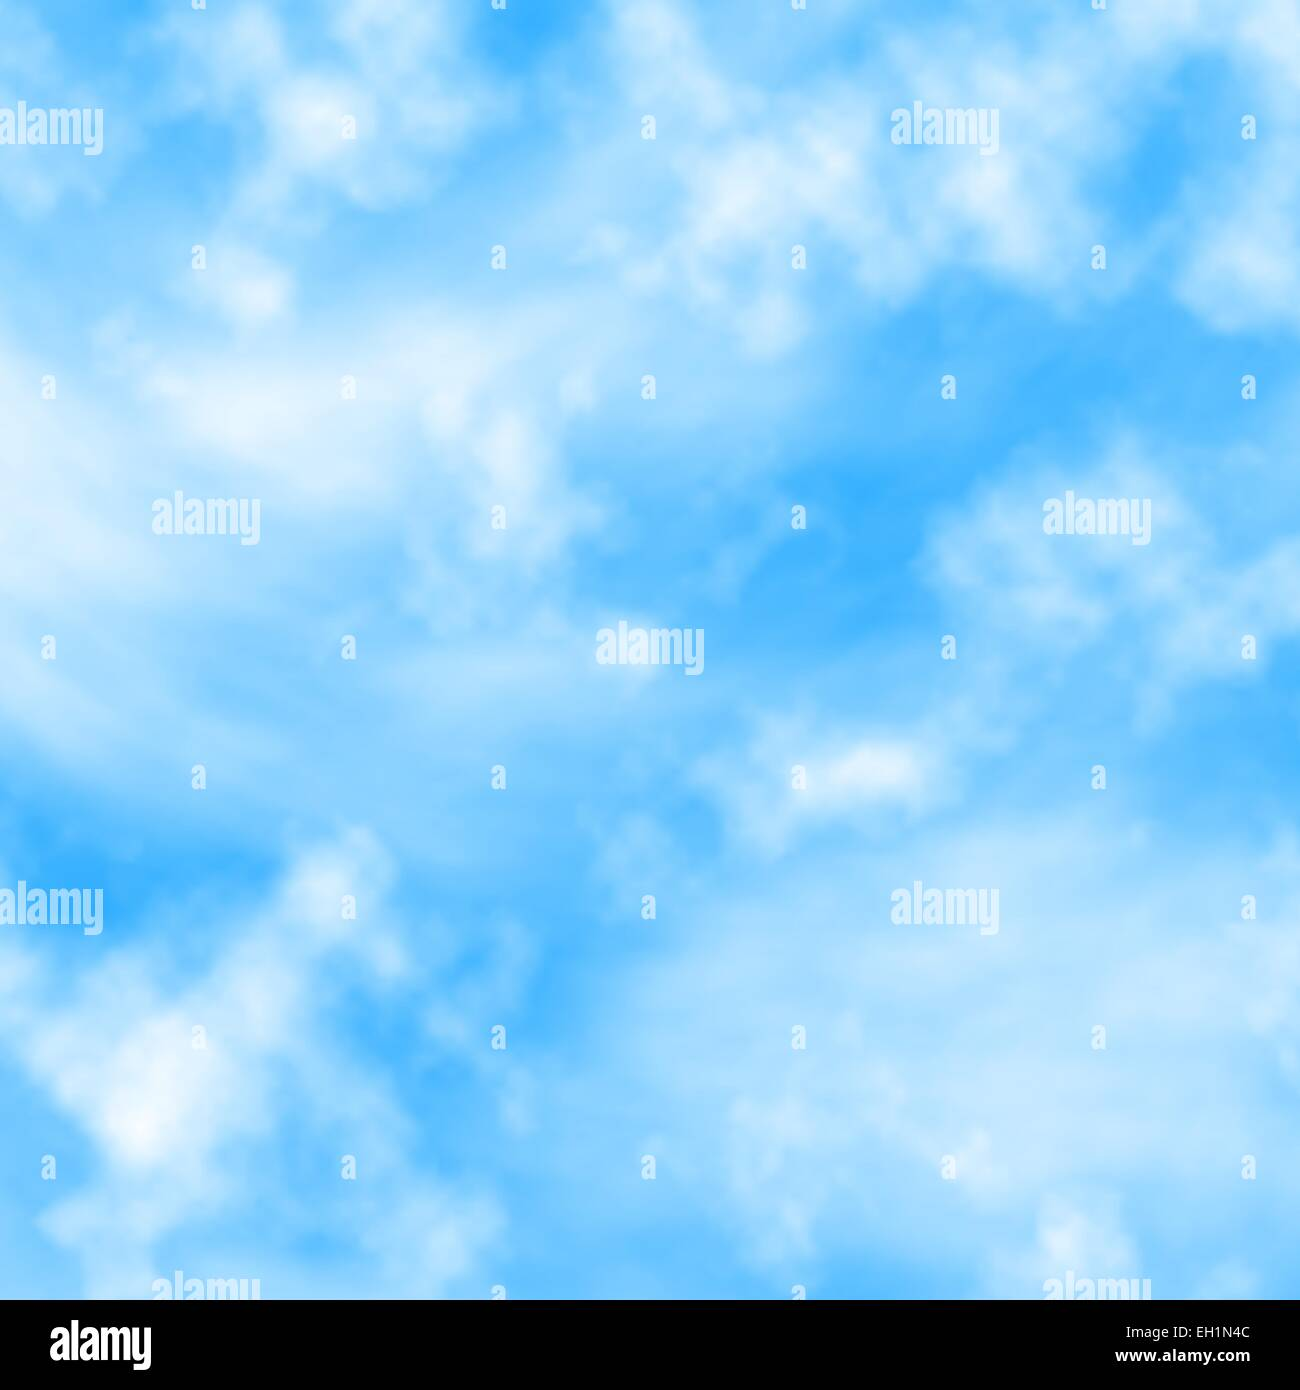 Editable vector illustration of fluffy white clouds in a blue sky made with a gradient mesh - Stock Image